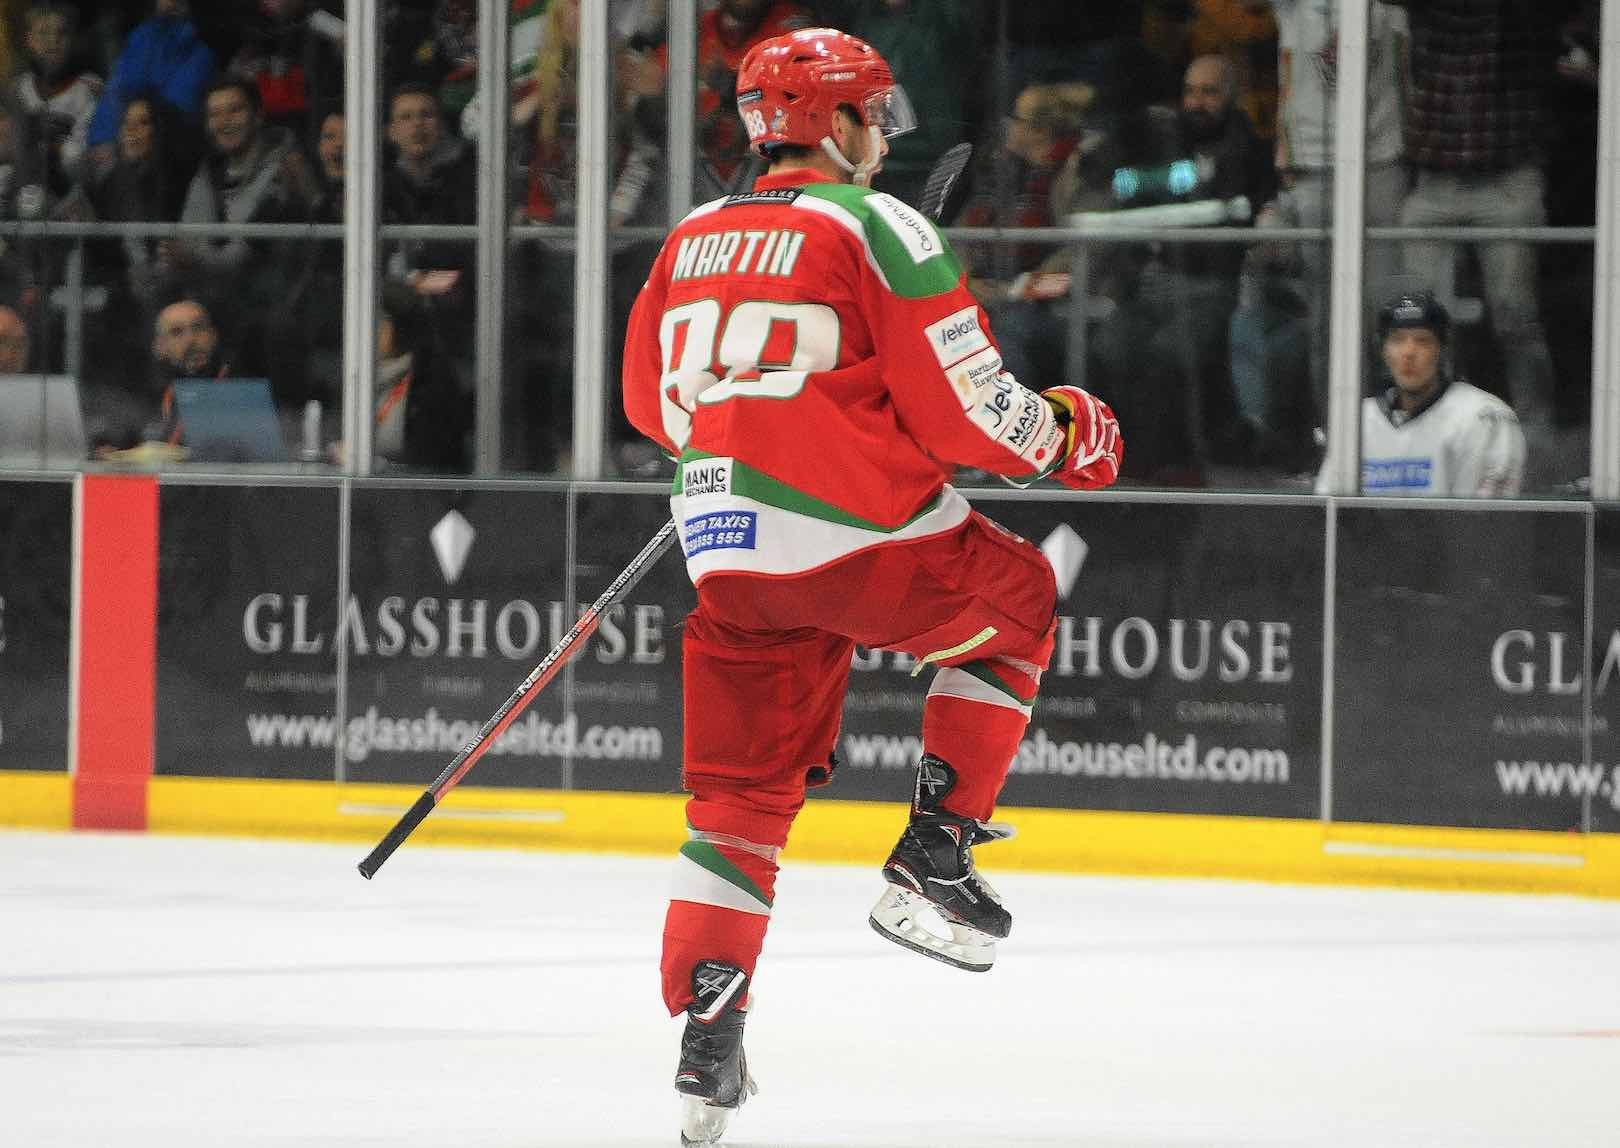 Cardiff Devils have reportedly reduced their staff due to COVID-19 ©Twitter/@Cardiffdevils